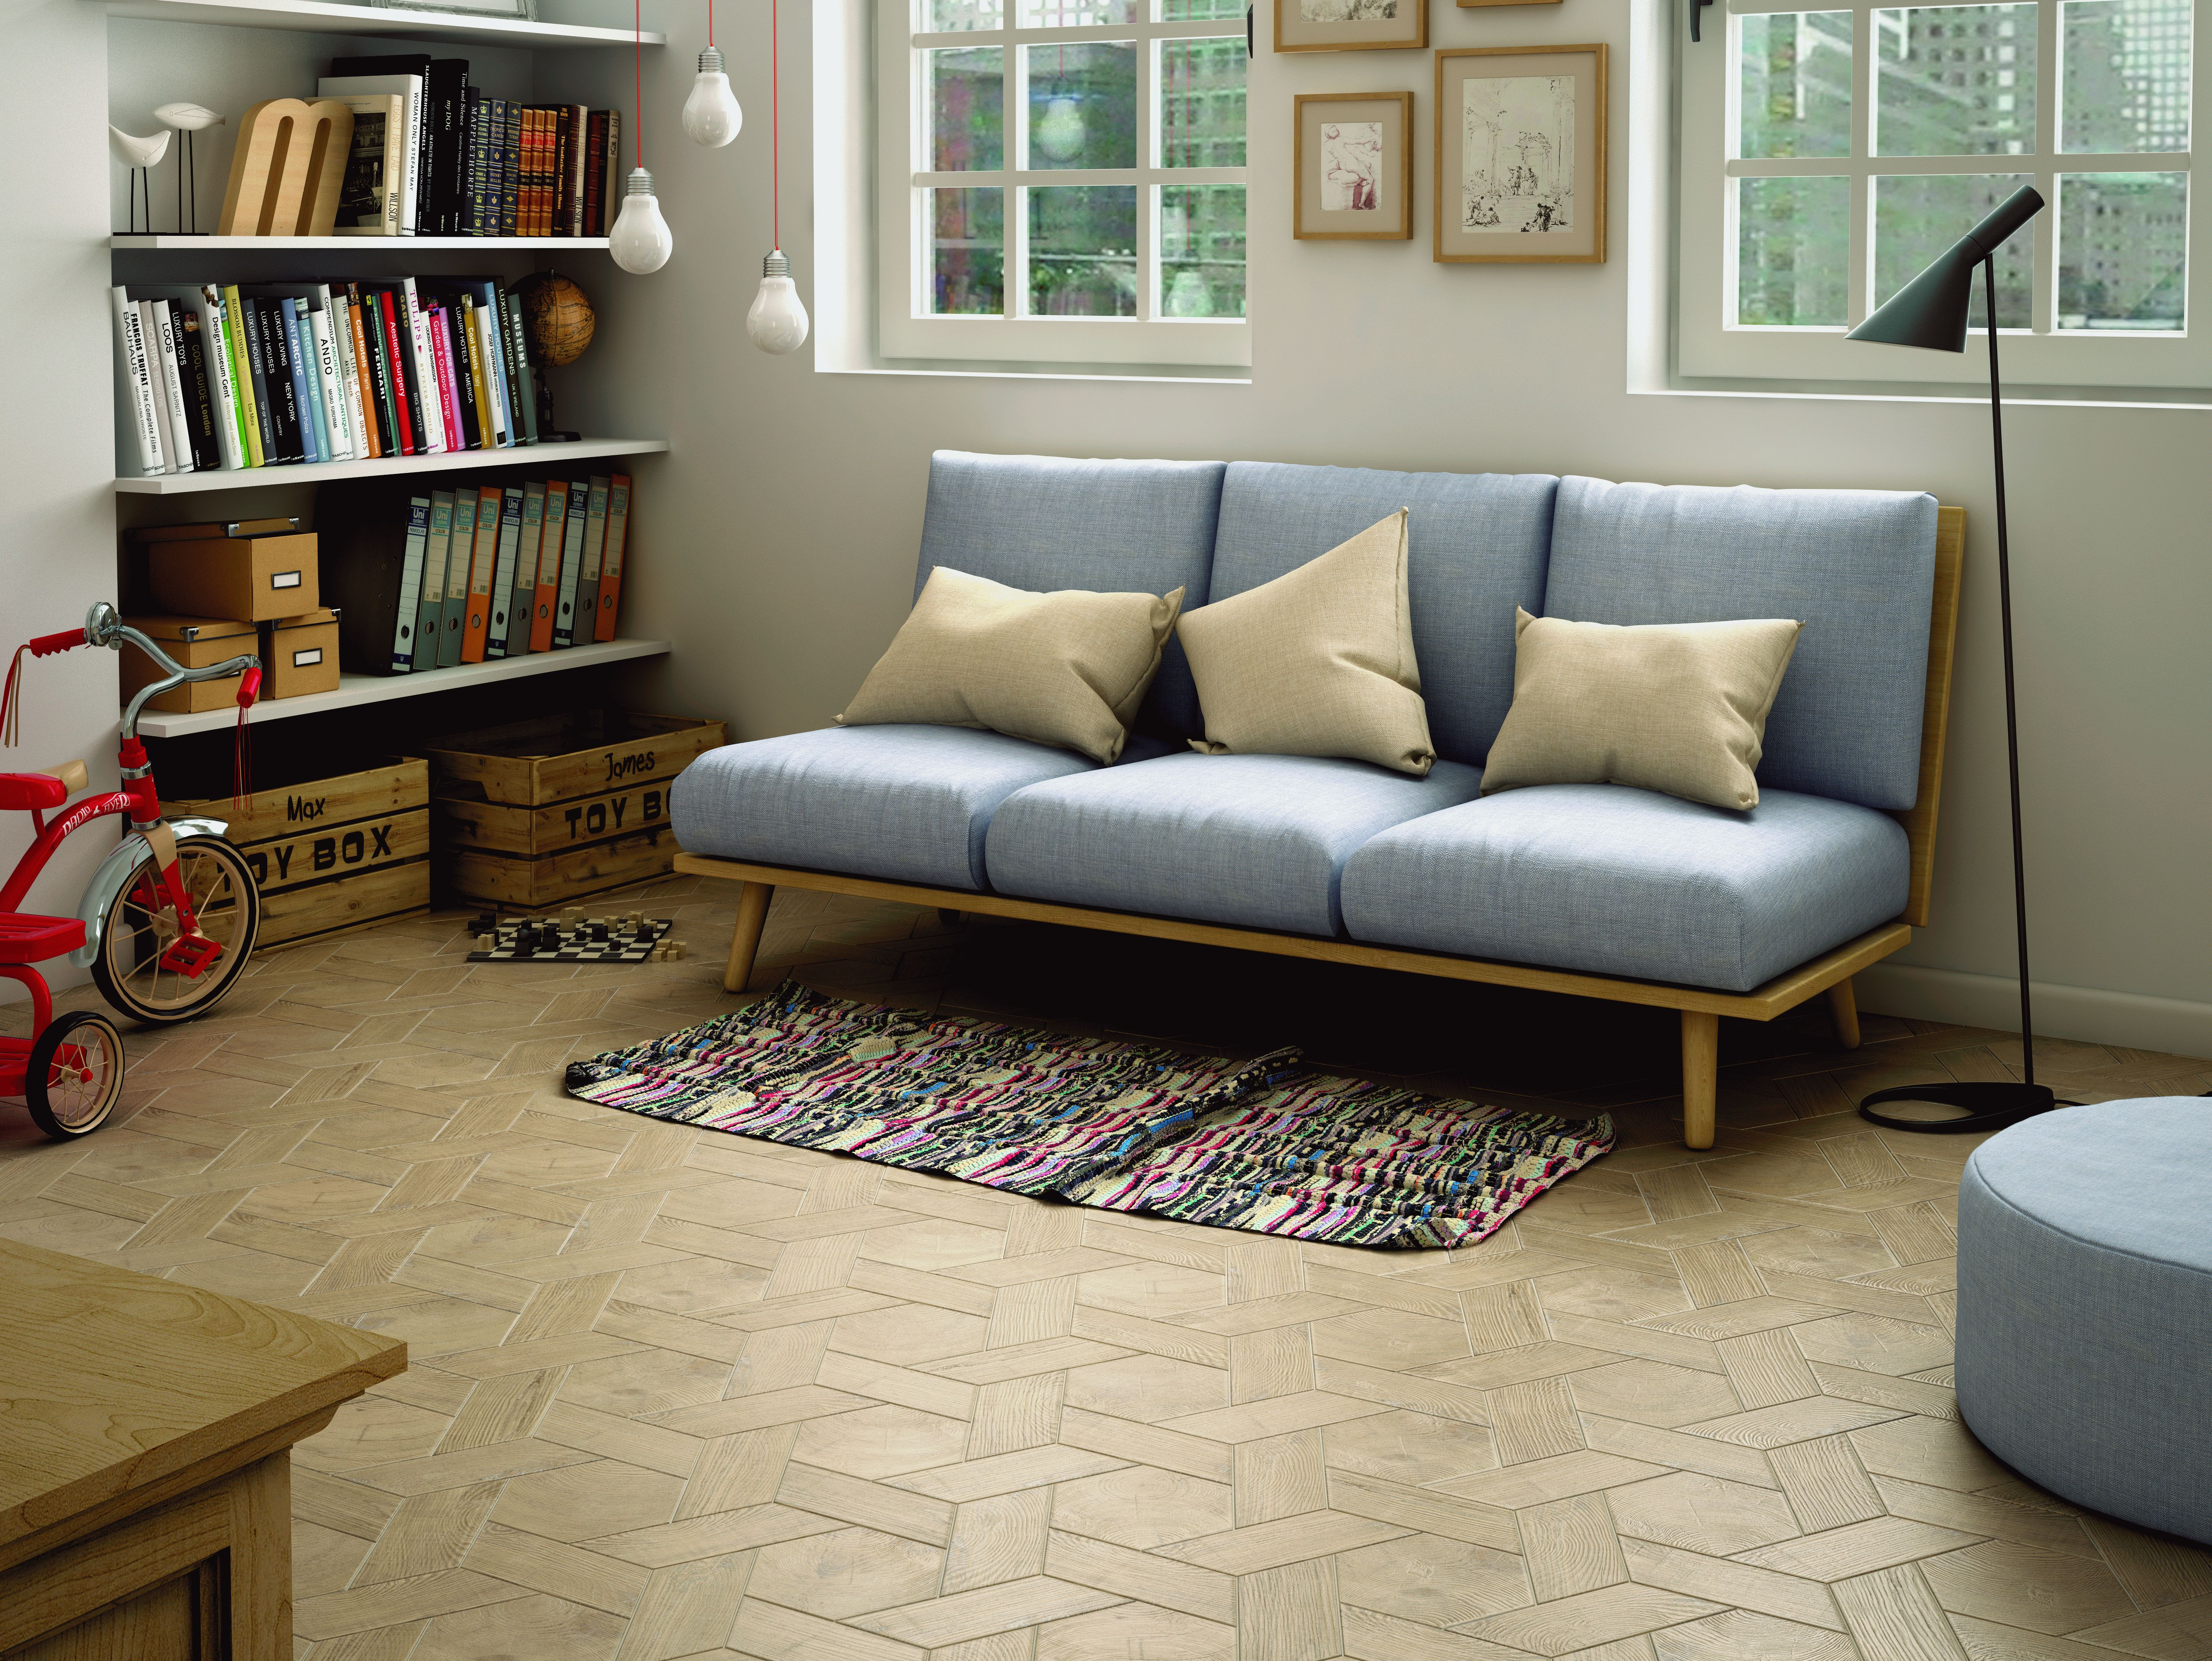 HEXAWOOD Ceramic and Porcelain Tiles by Equipe Ceramicas